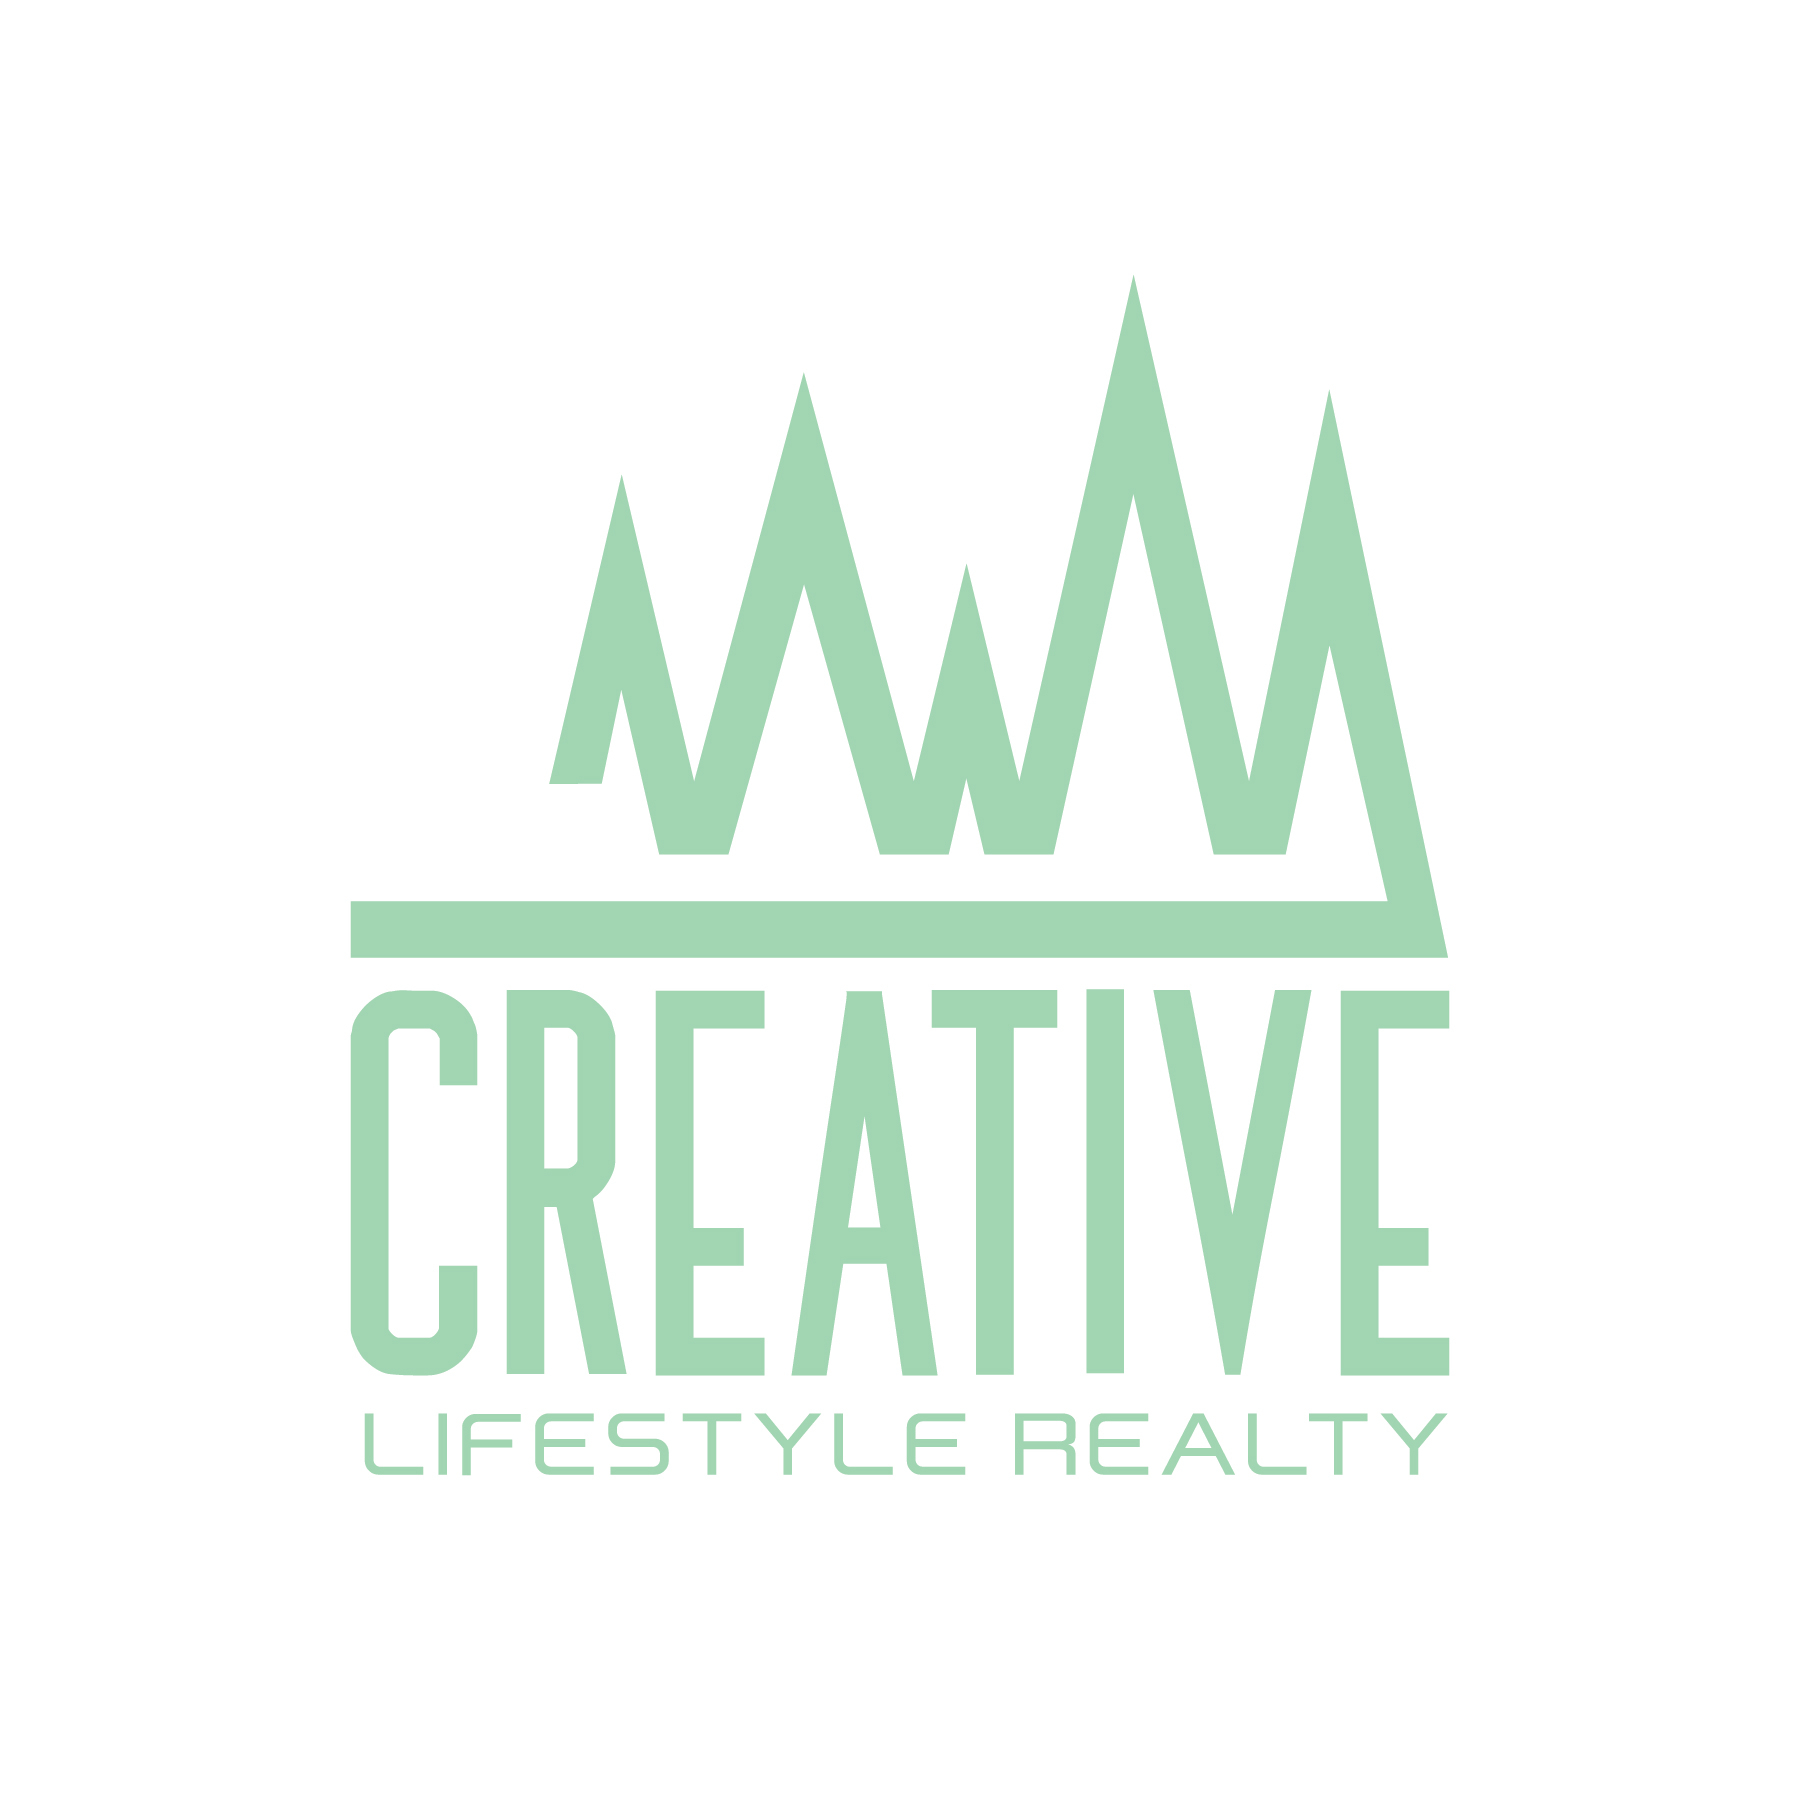 Creative Lifestyle Realty